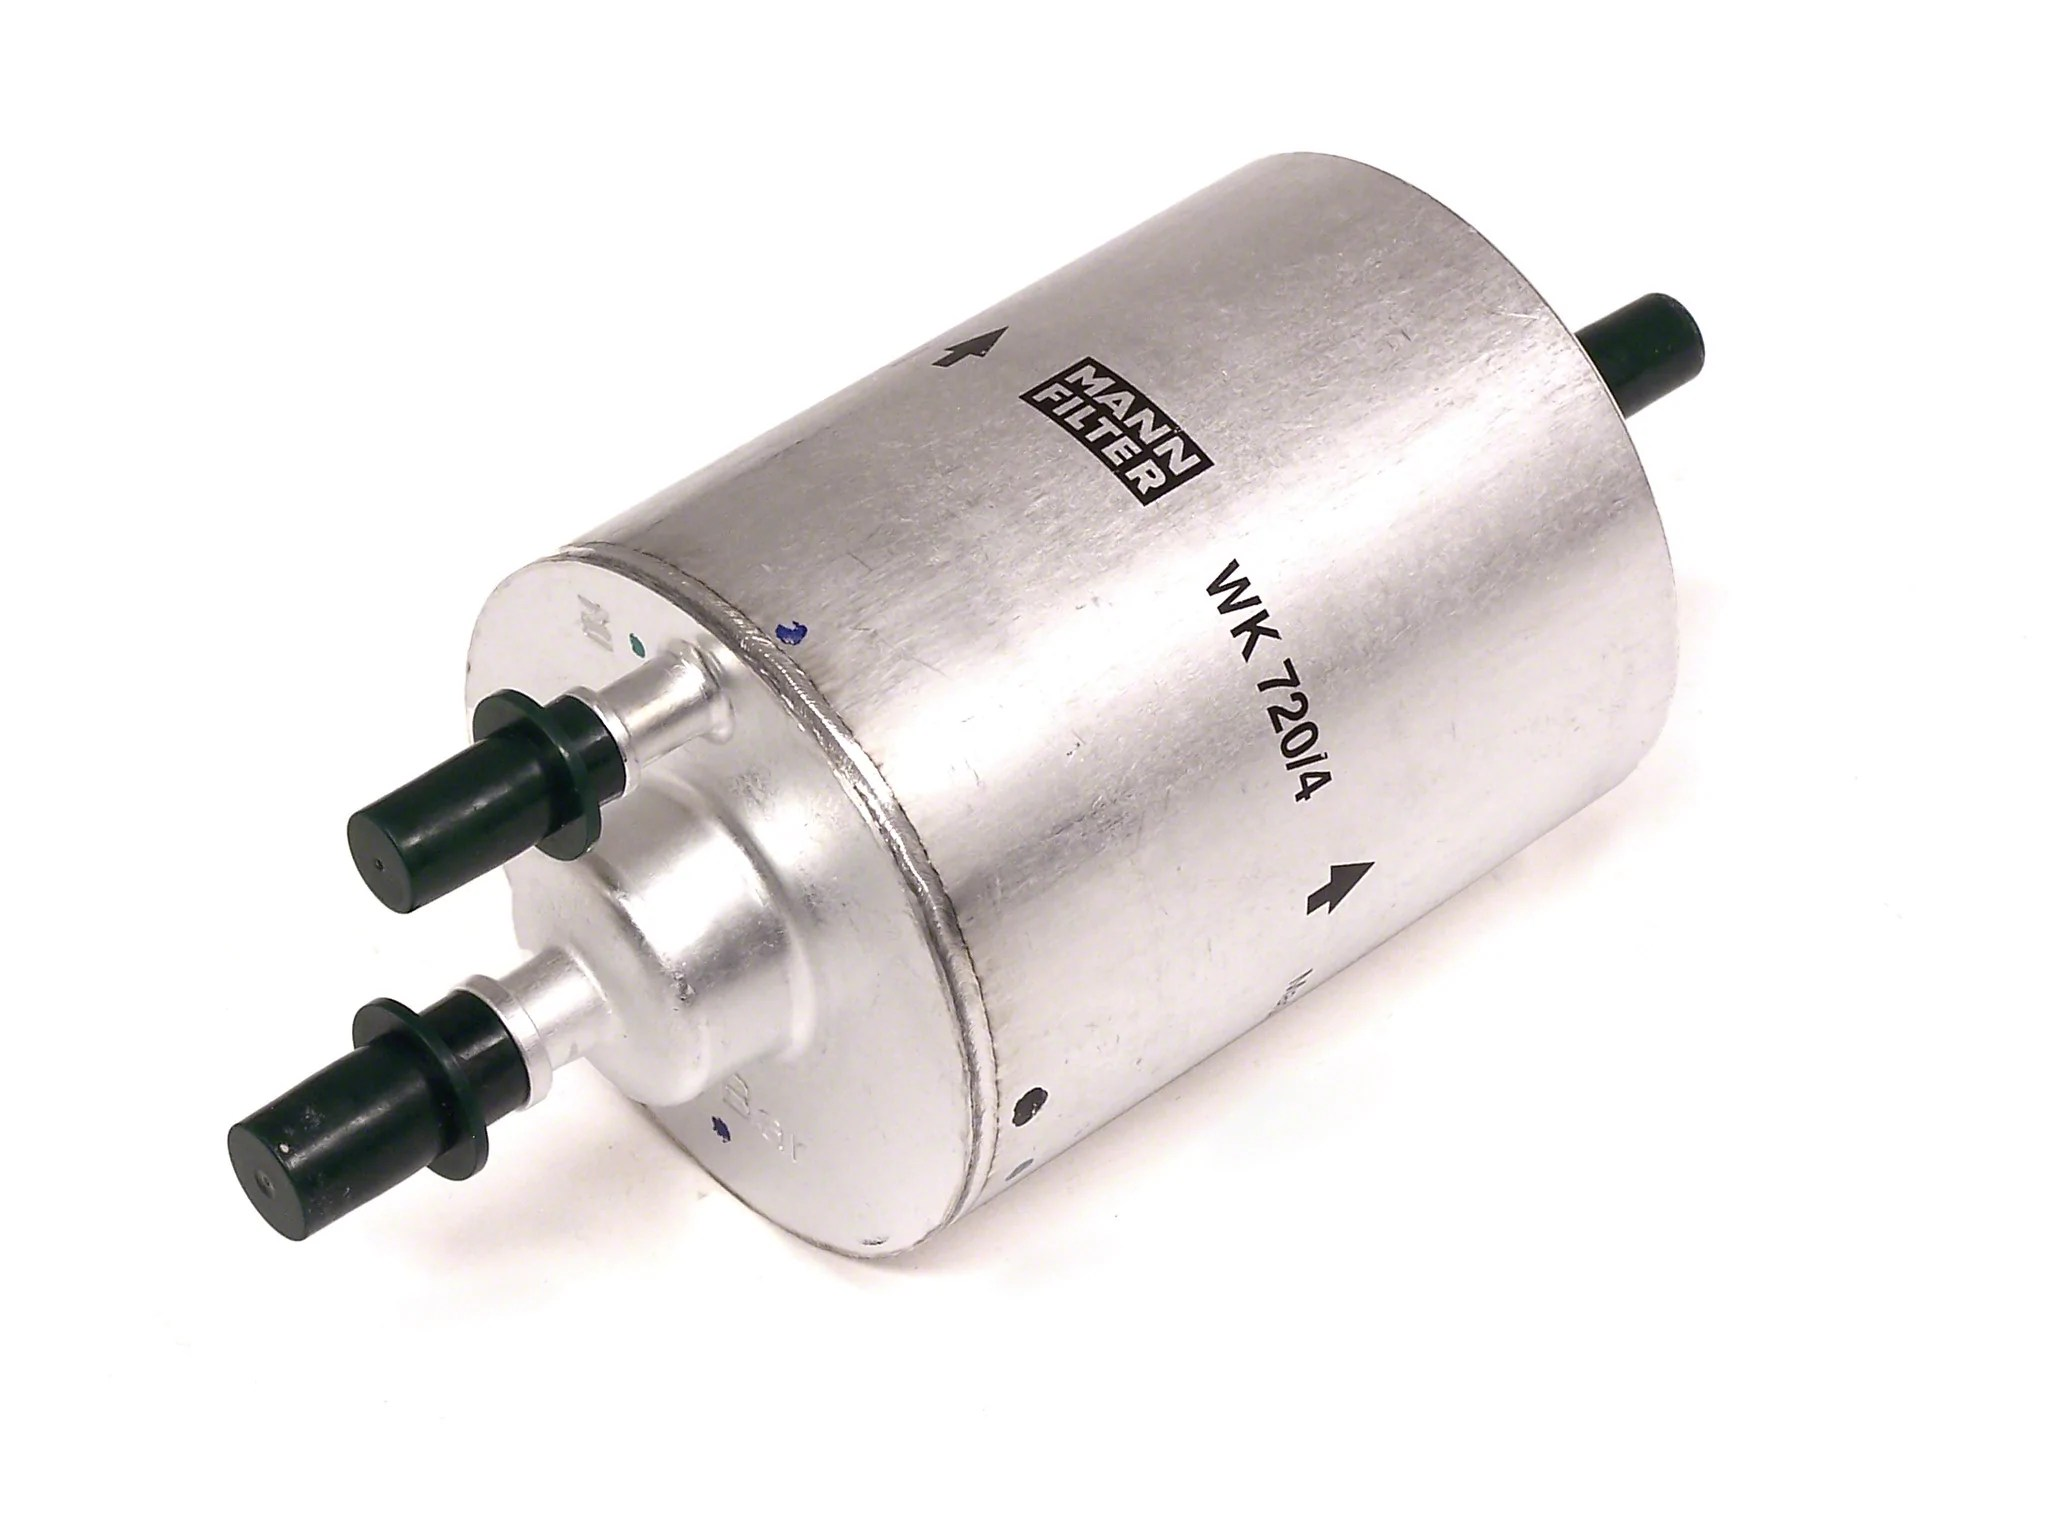 hight resolution of 2007 jettum fuel filter